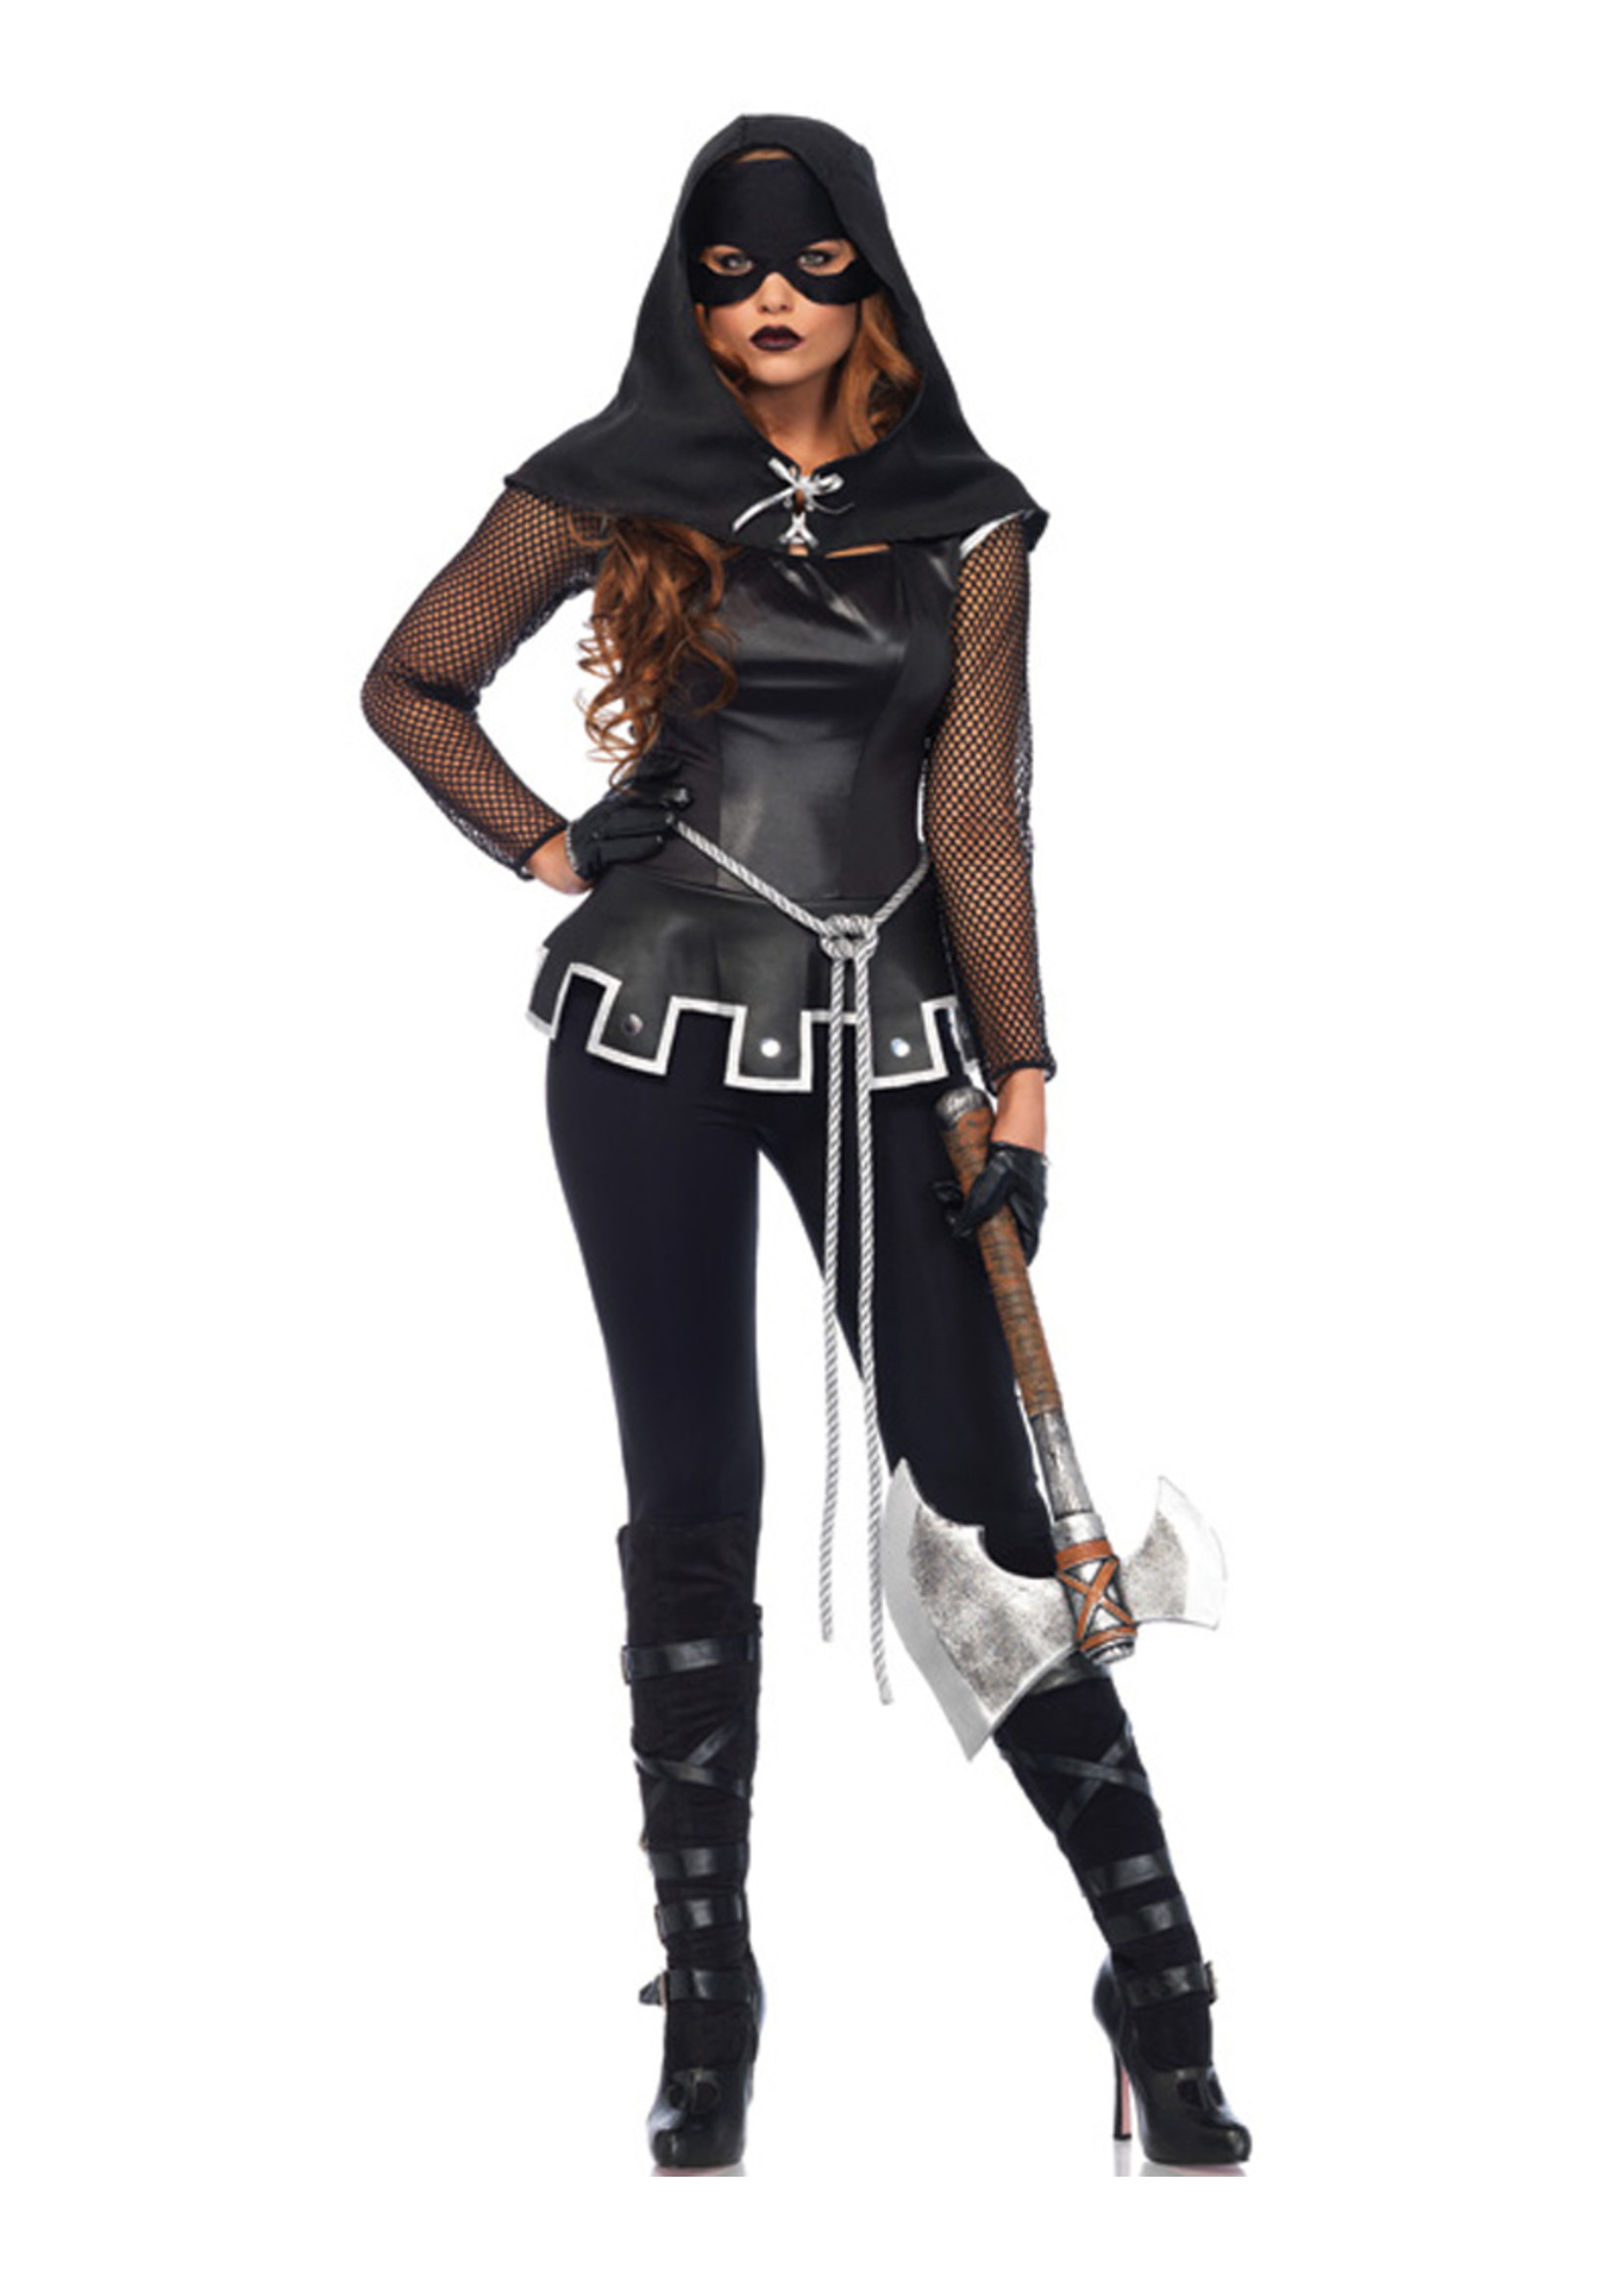 Grim Executioner Costume - Women's